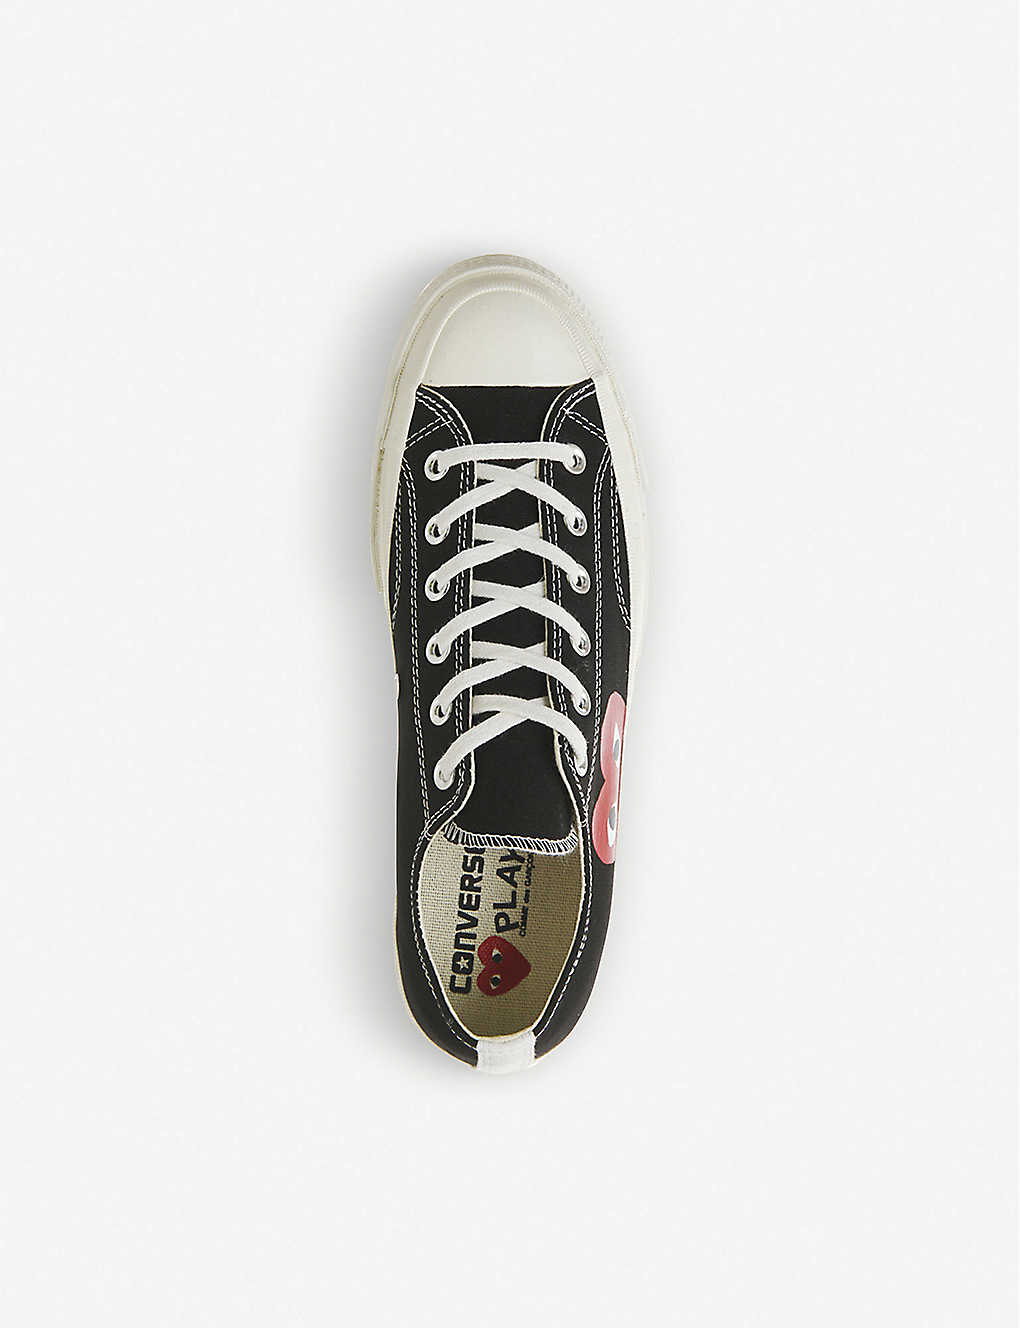 494e3664cfdc6f COMME DES GARCONS - Converse 70s x play cdg trainers